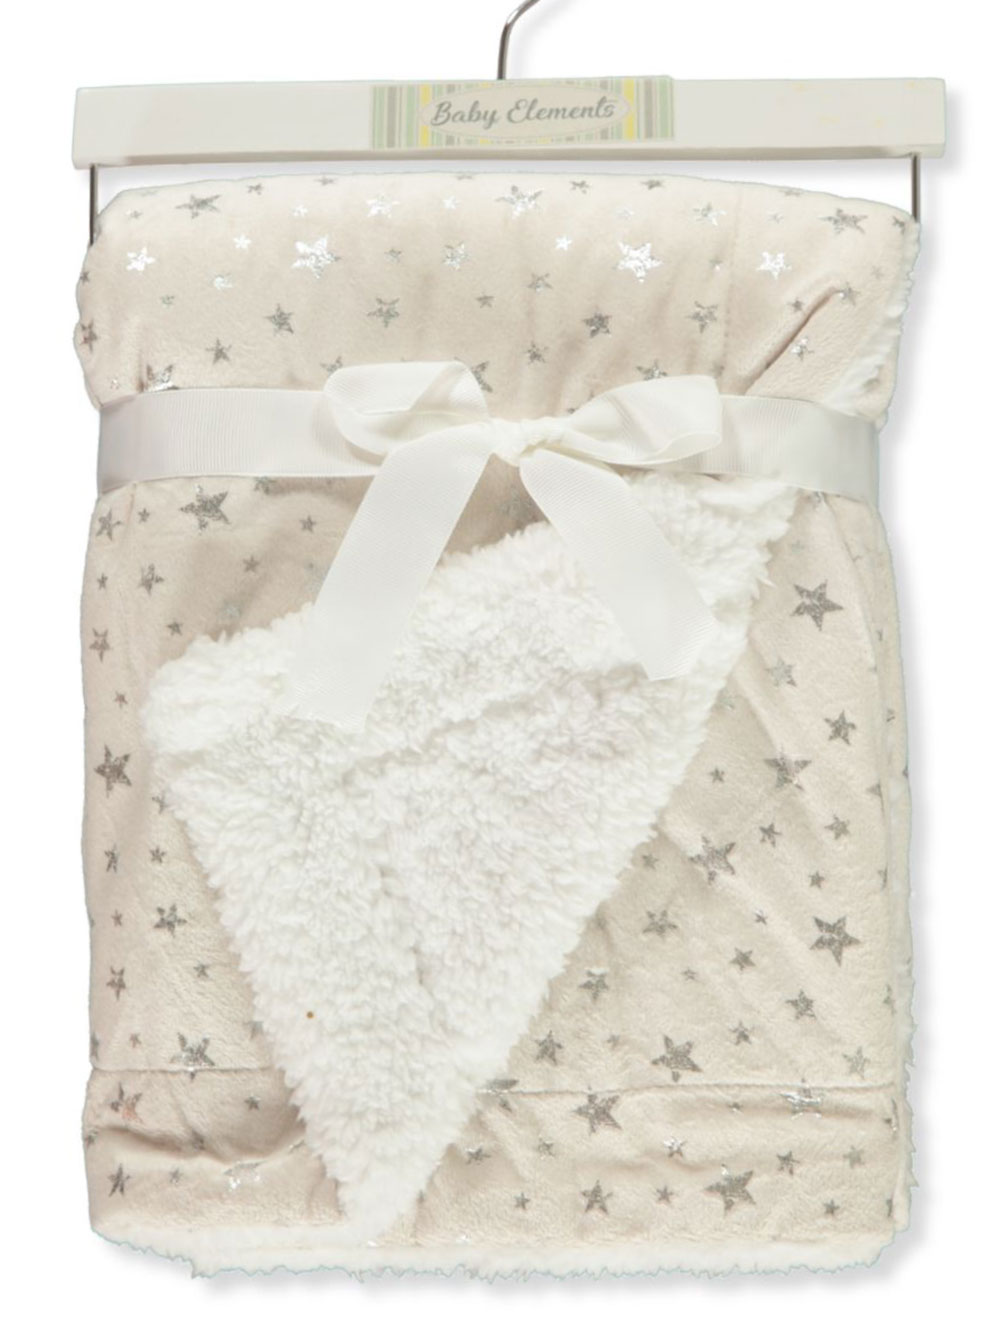 Star Plush Blanket With Wooden Hanger